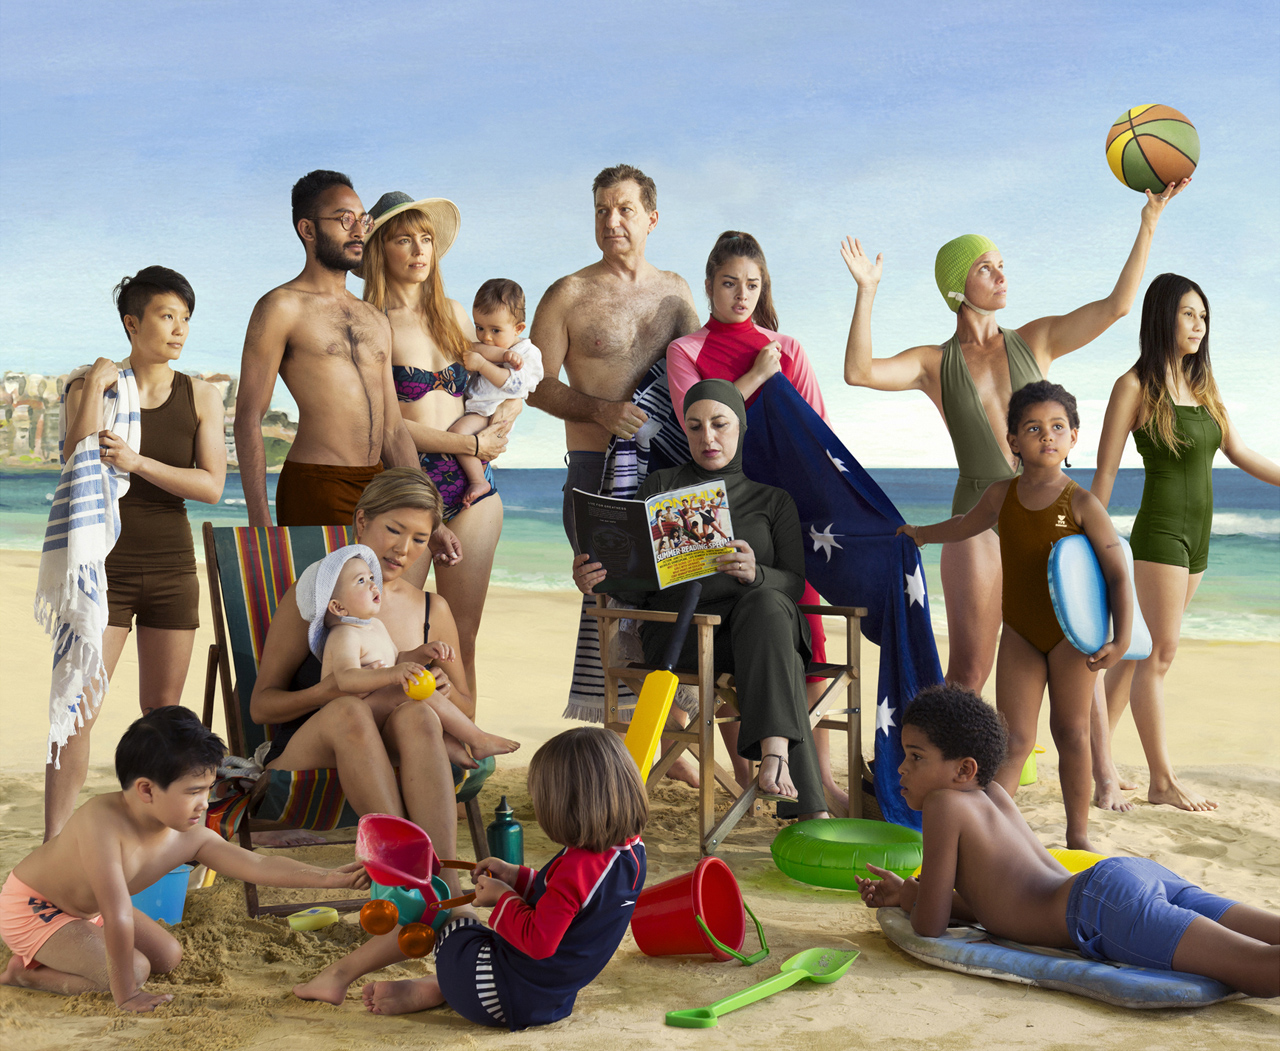 ANNE ZAHALKA   The New Bathers  2013 Type C photograph on flex 90cm x 74cm